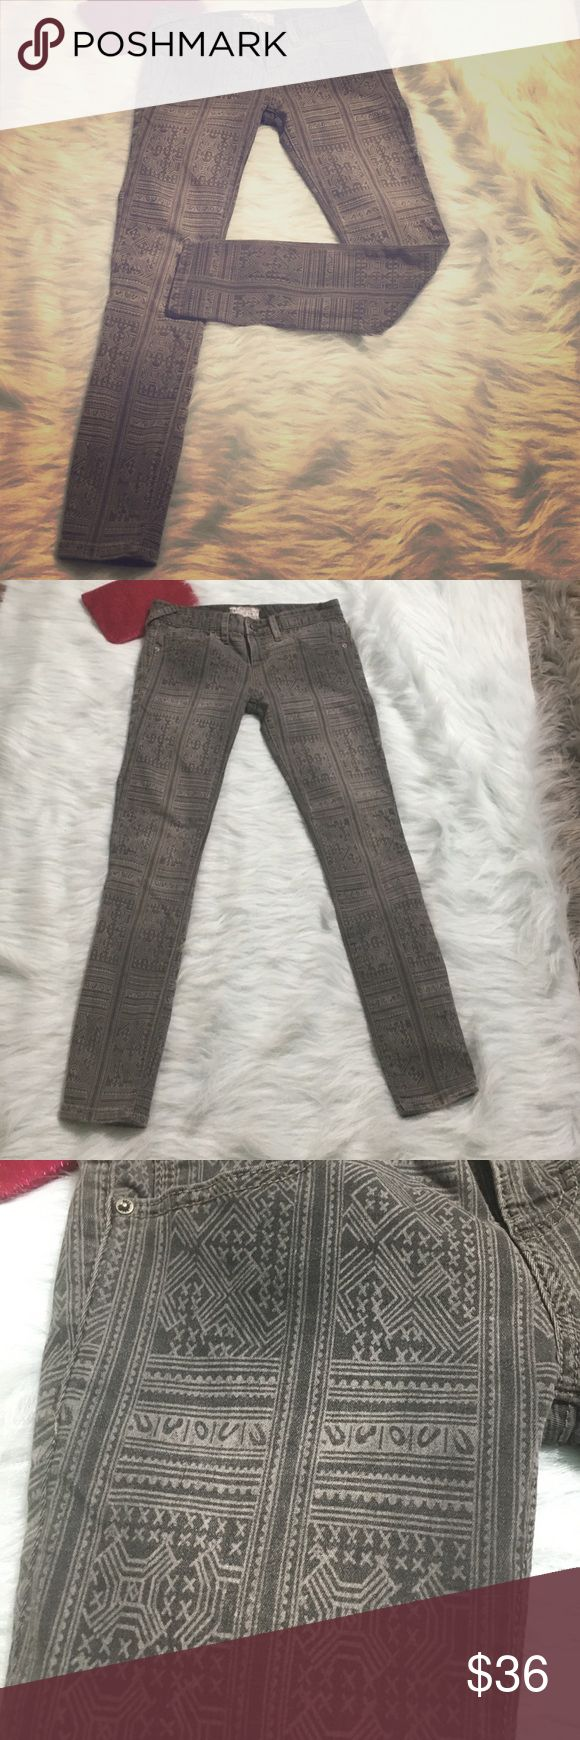 Free People Gray Geometric Skinny Jean Legging 24 Free People Grey Skinny Jeans/ Leggings Size 24 W. super sexy and trendy! 💋💖 Has small flaw, missing right front belt loop, barely noticeable and can be easily concealed! Happy shopping 😘 Free People Jeans Skinny